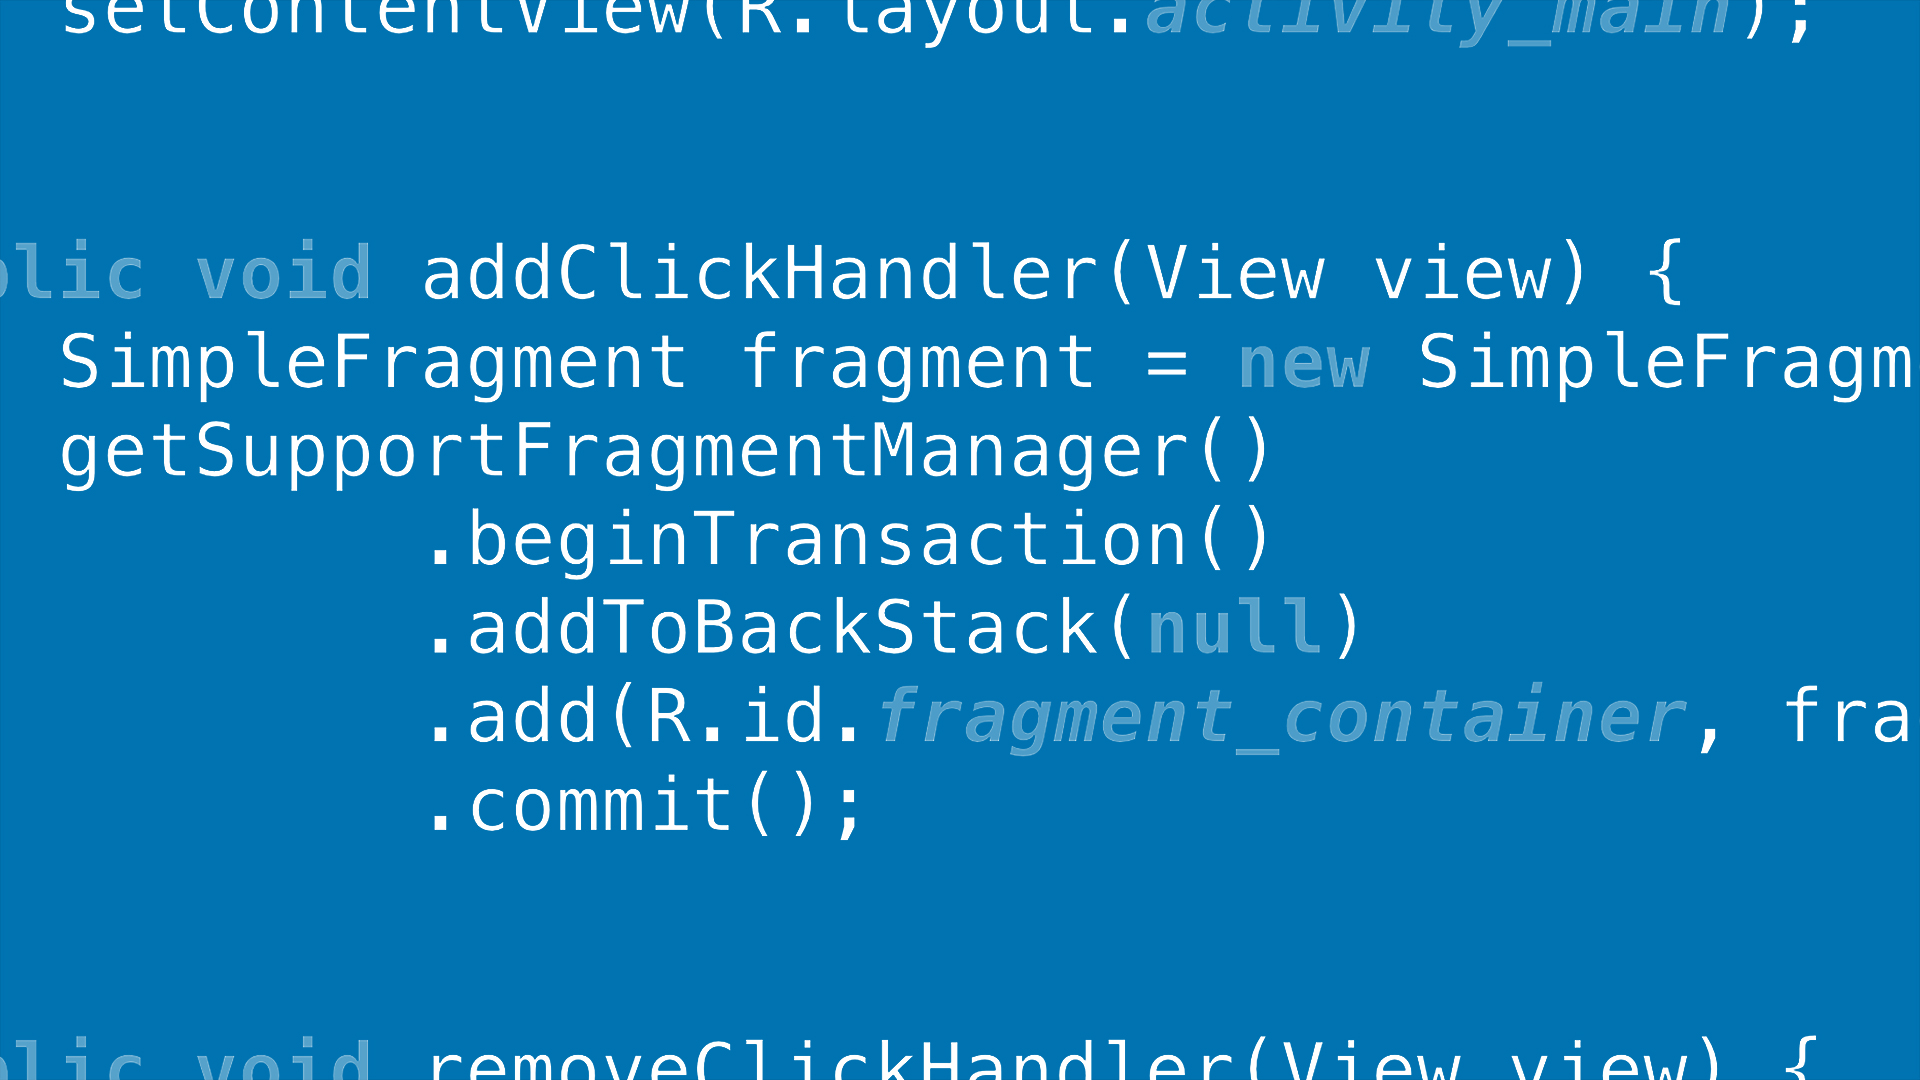 Building Flexible Android Apps with the Fragments API